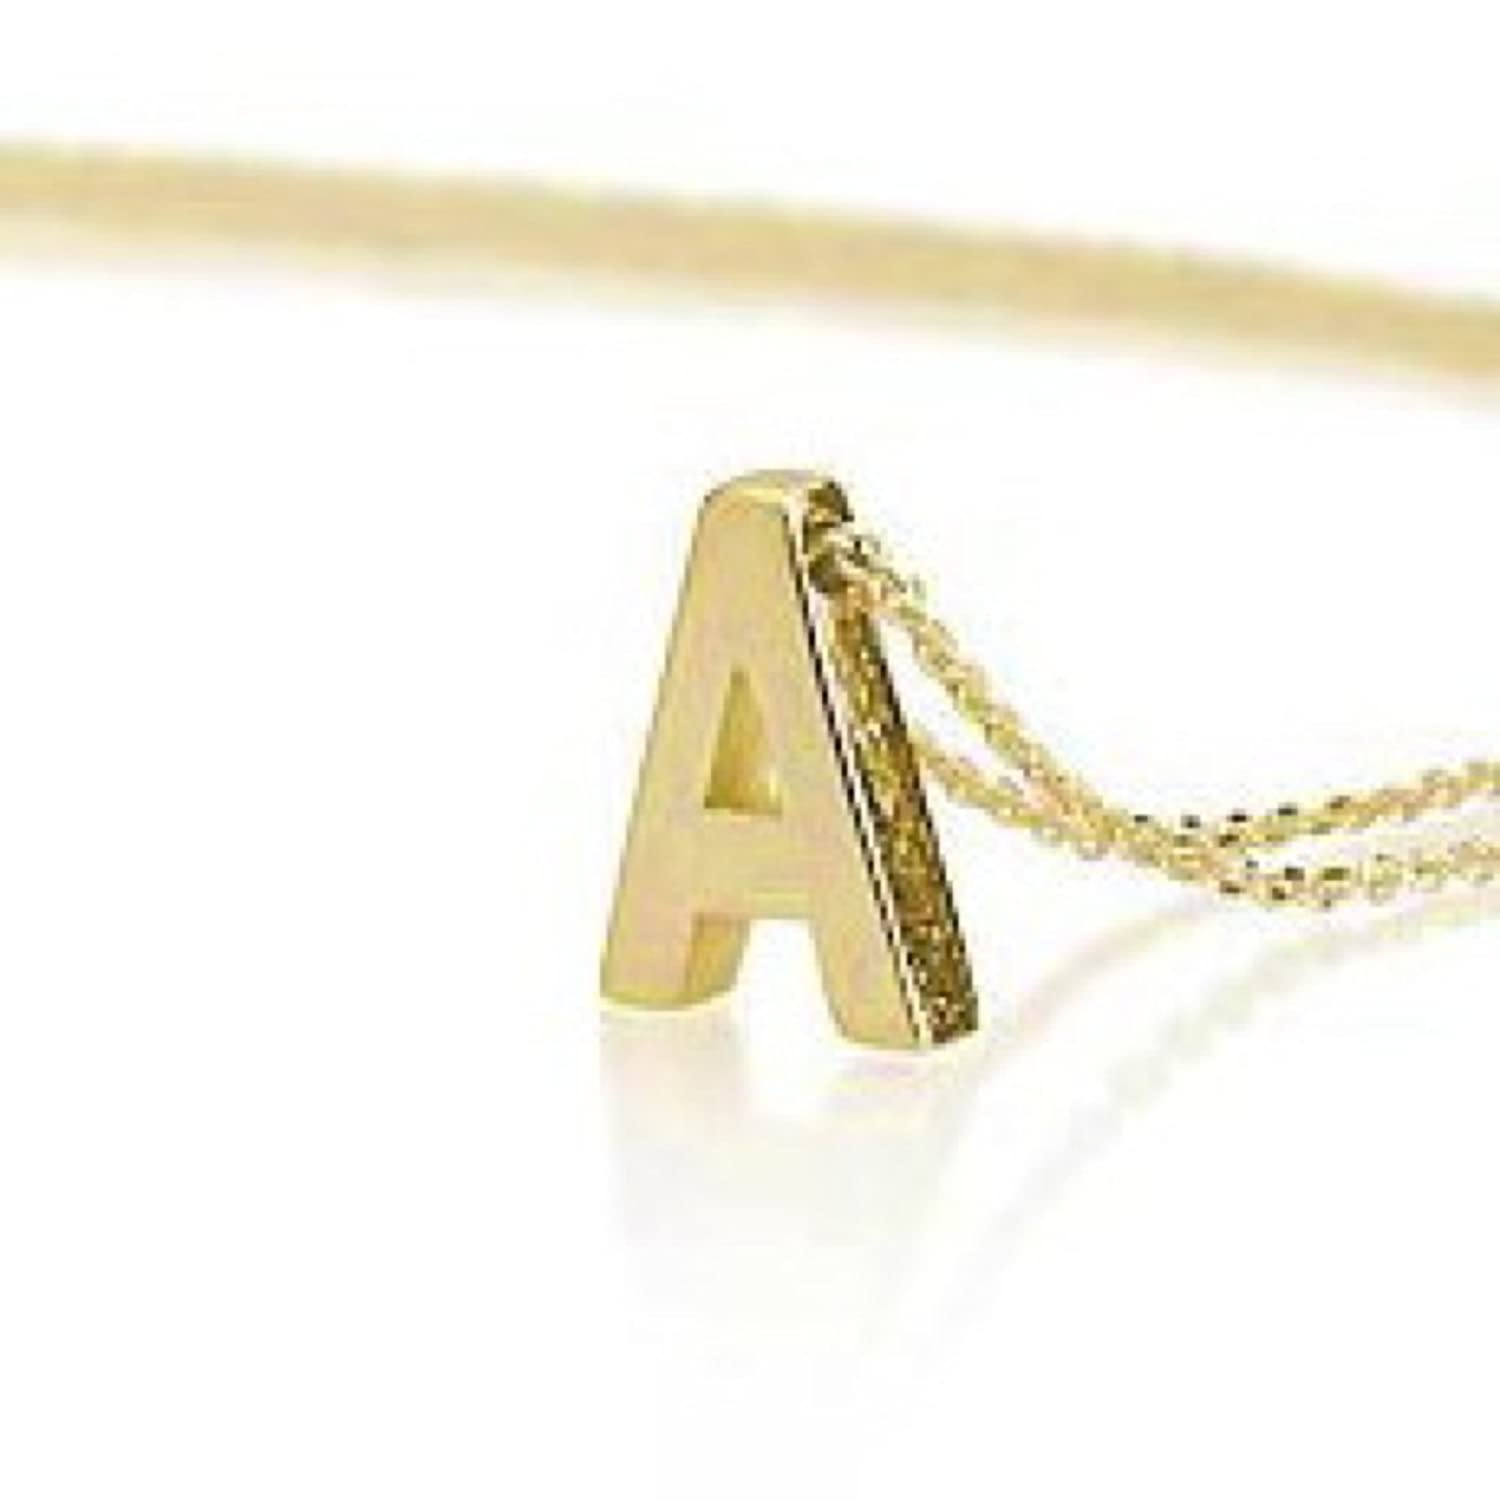 Amazon initial necklace 18k gold plated personalized initial amazon initial necklace 18k gold plated personalized initial necklace letter necklace choose any initial 14 inches pendant necklaces jewelry aloadofball Image collections